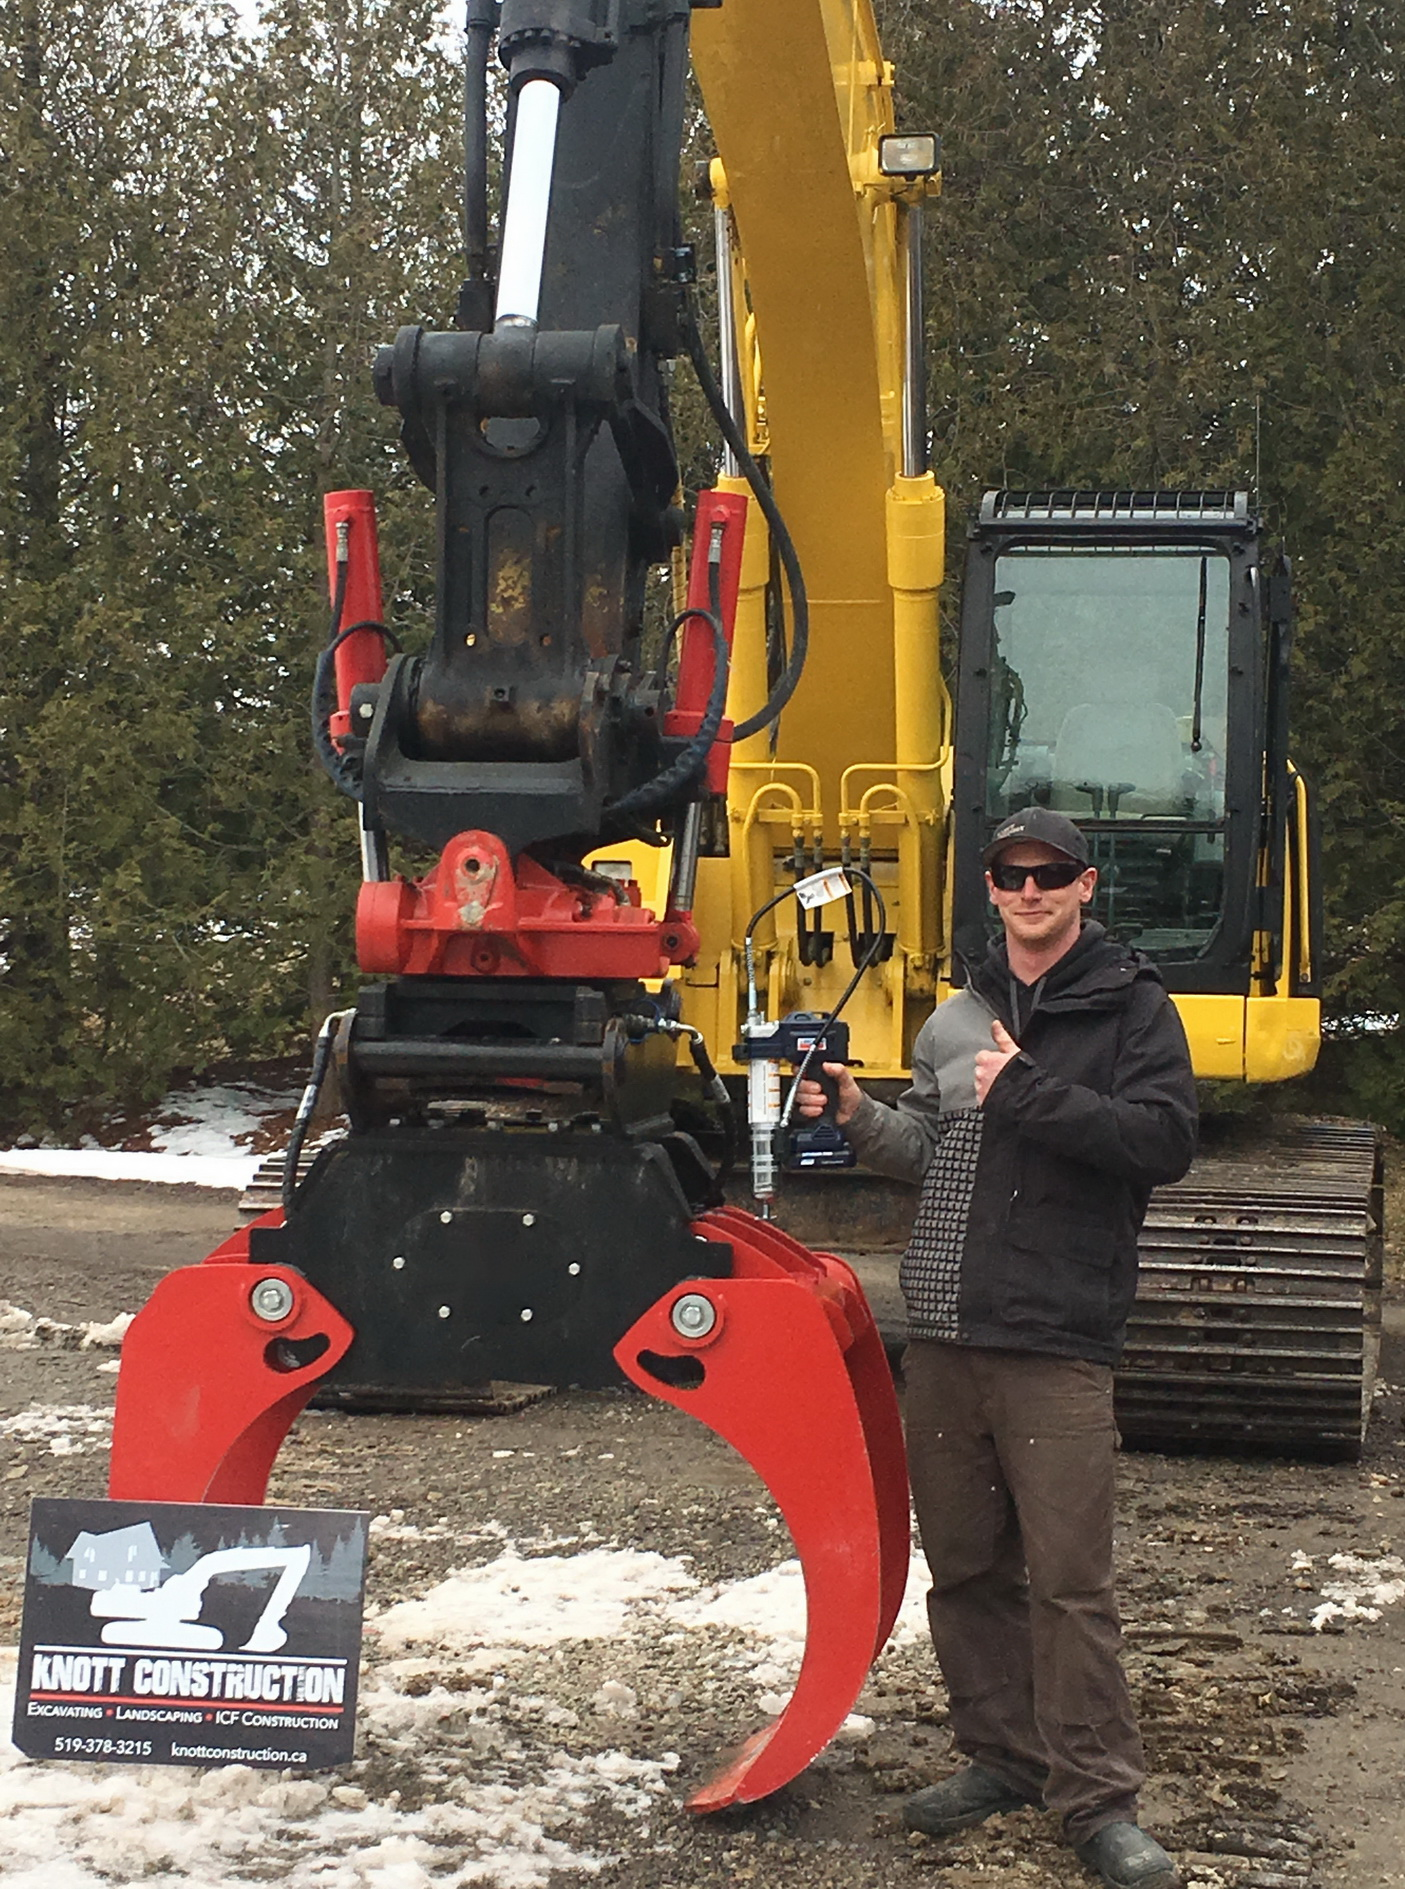 Winner in the FLO Components NHES 2019 Lincoln PowerLuber Grease Gun Contest - Matt Wilson of Knott Construction Ltd.